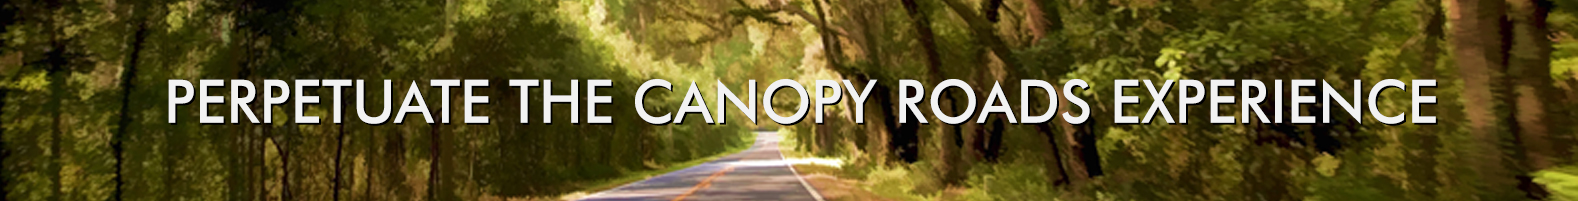 Canopy Roads Management Plan Goals